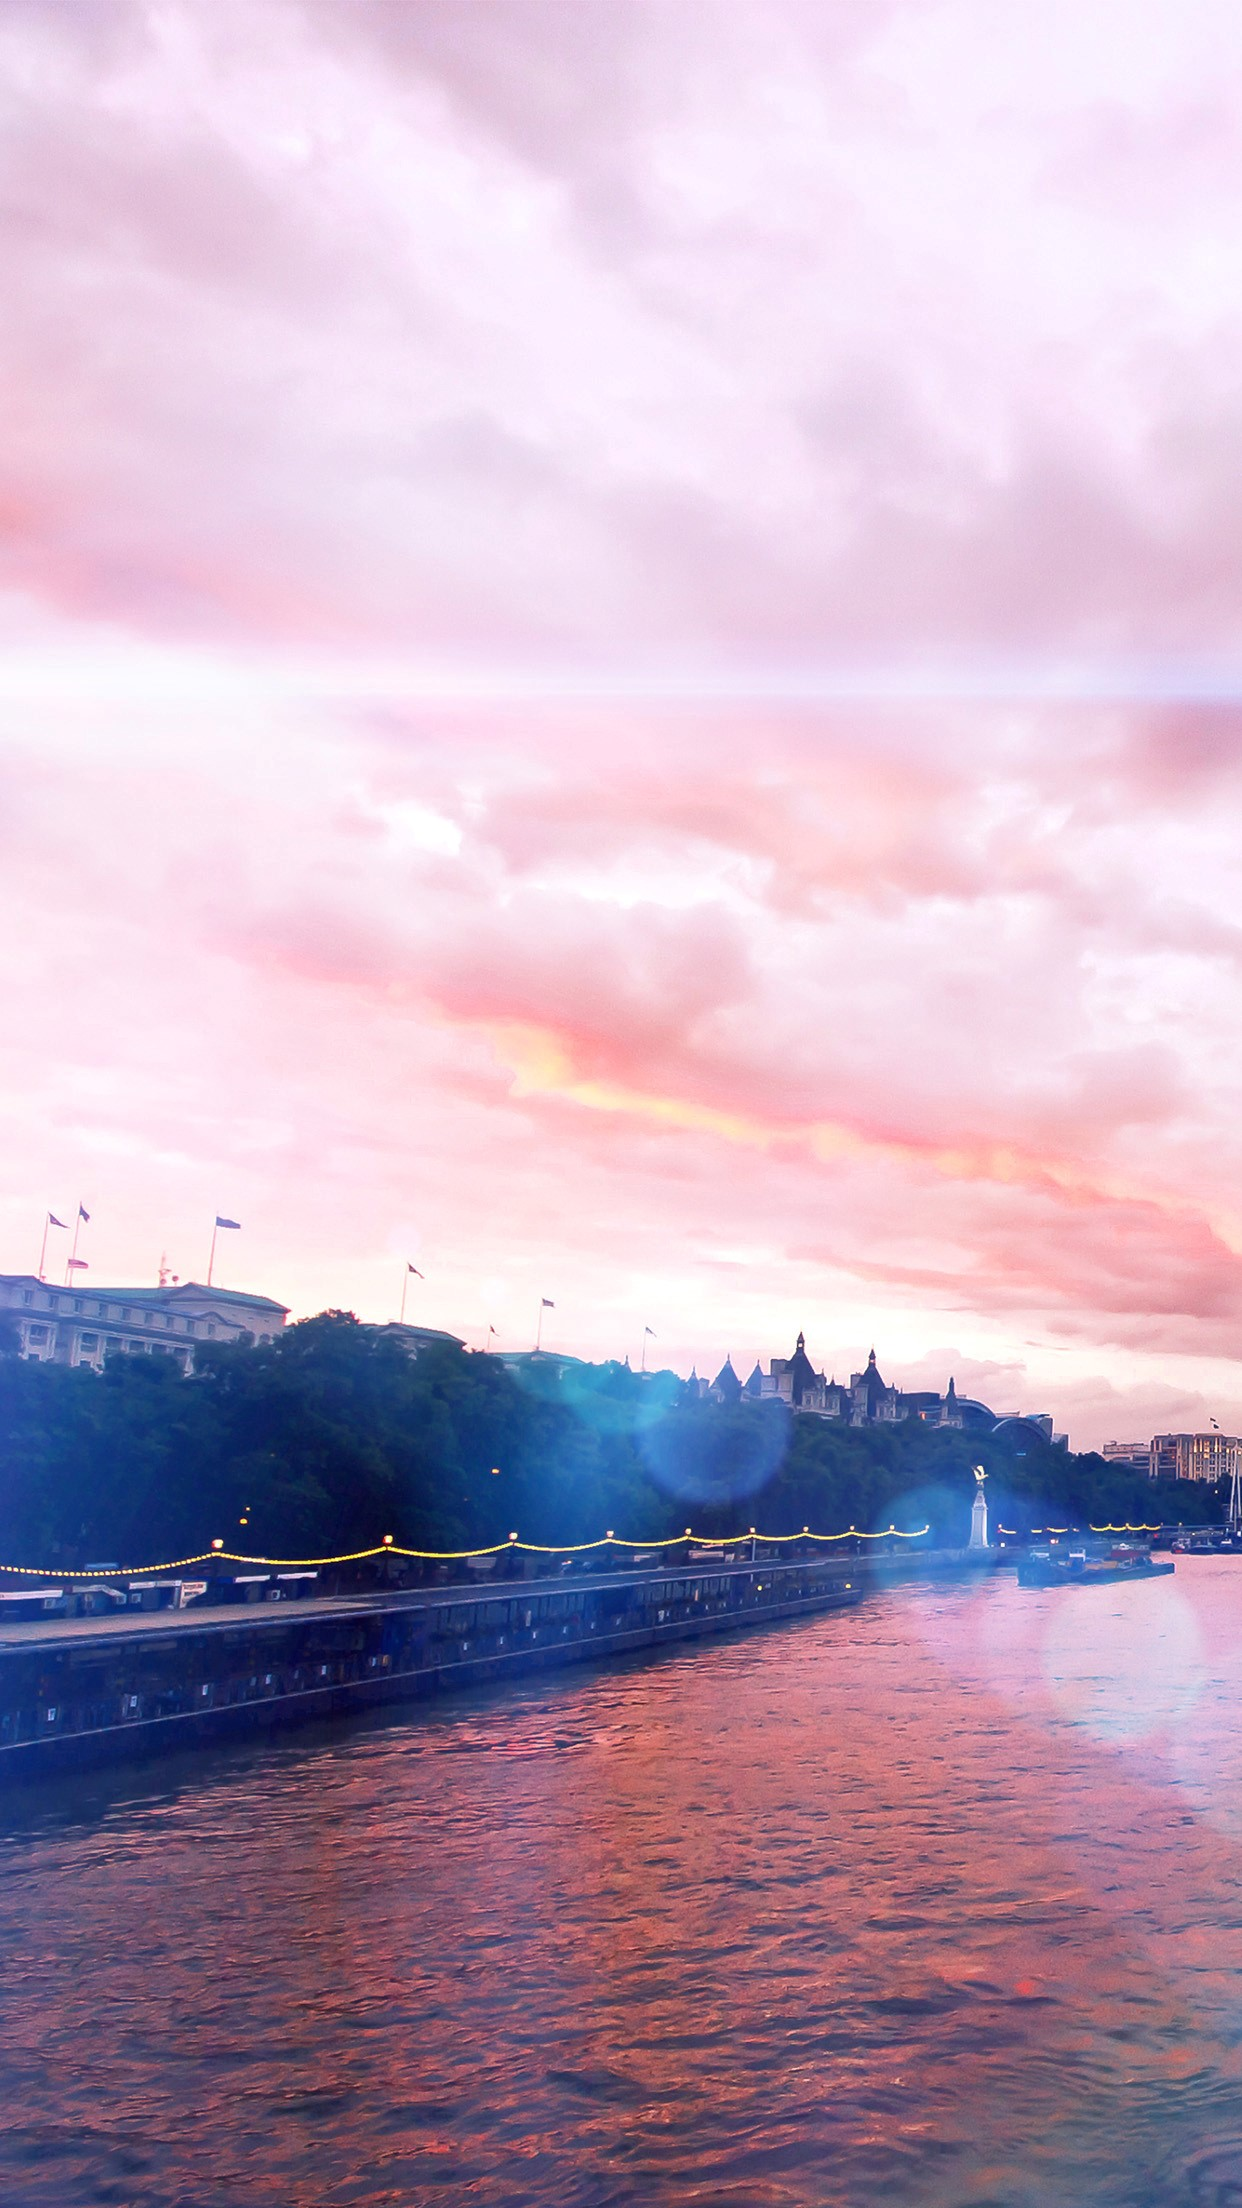 Azul Flare Arco Iris River City Flags Sunset Android Rose Gold